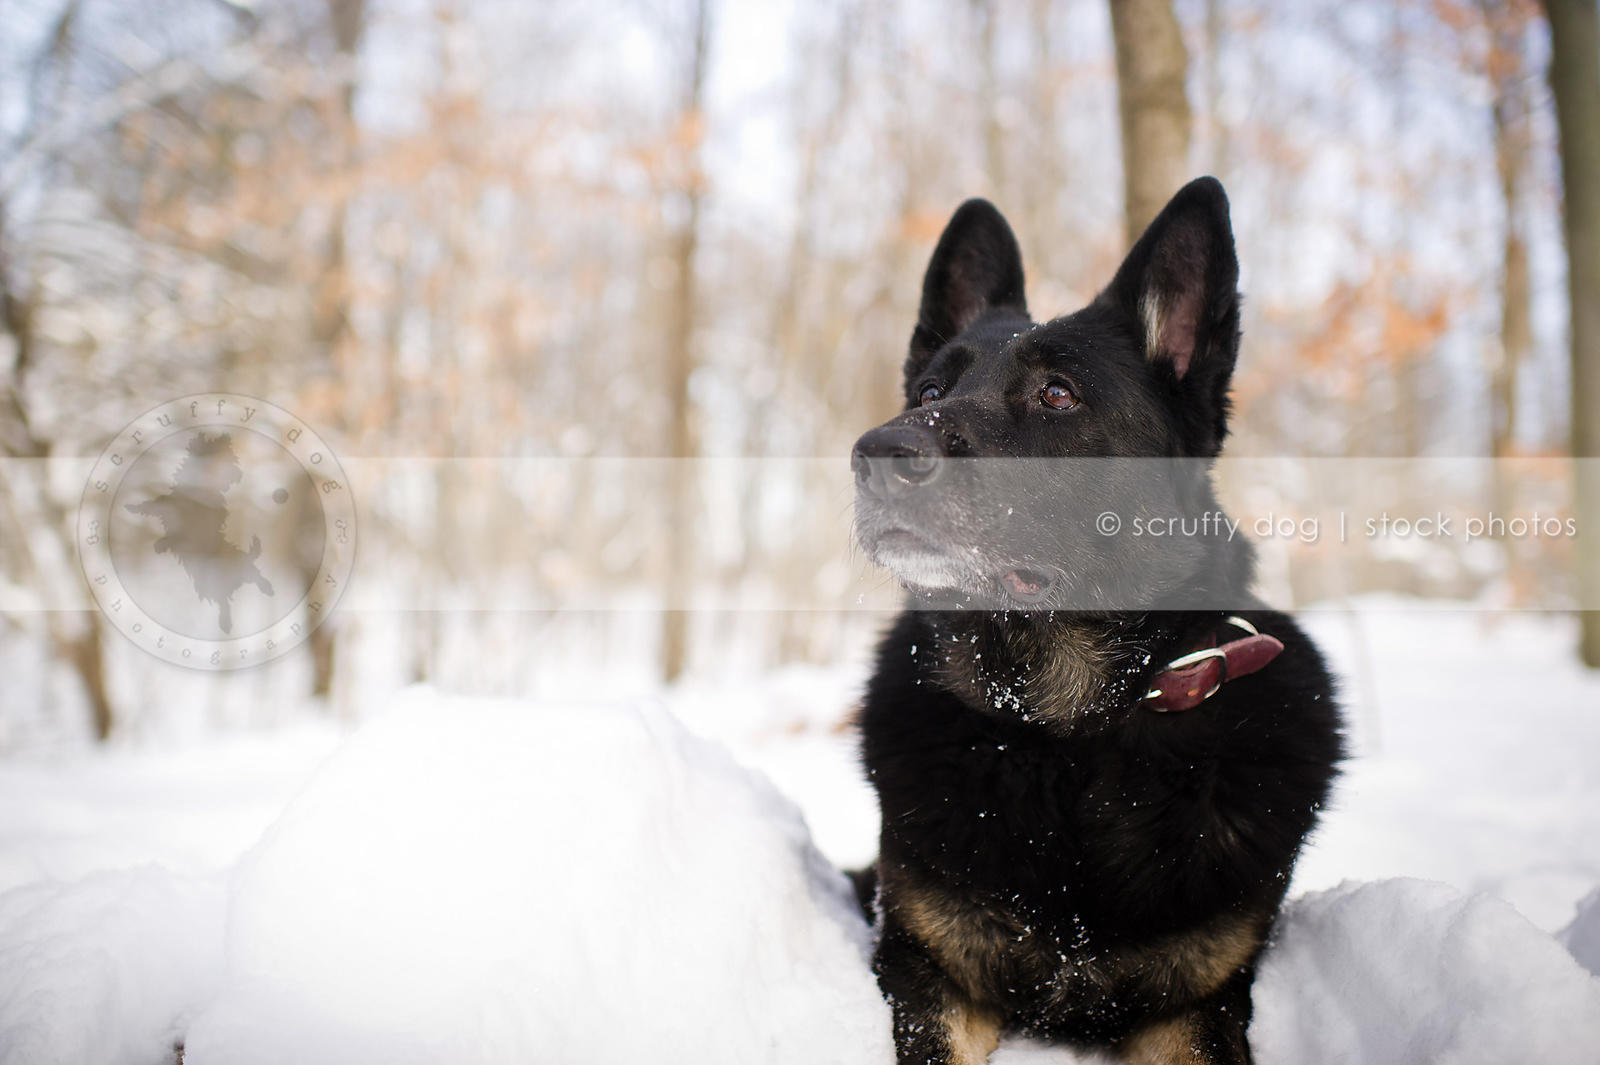 Stock Photo Humorous German Shepherd Dog Shaking Off Snow In Forest